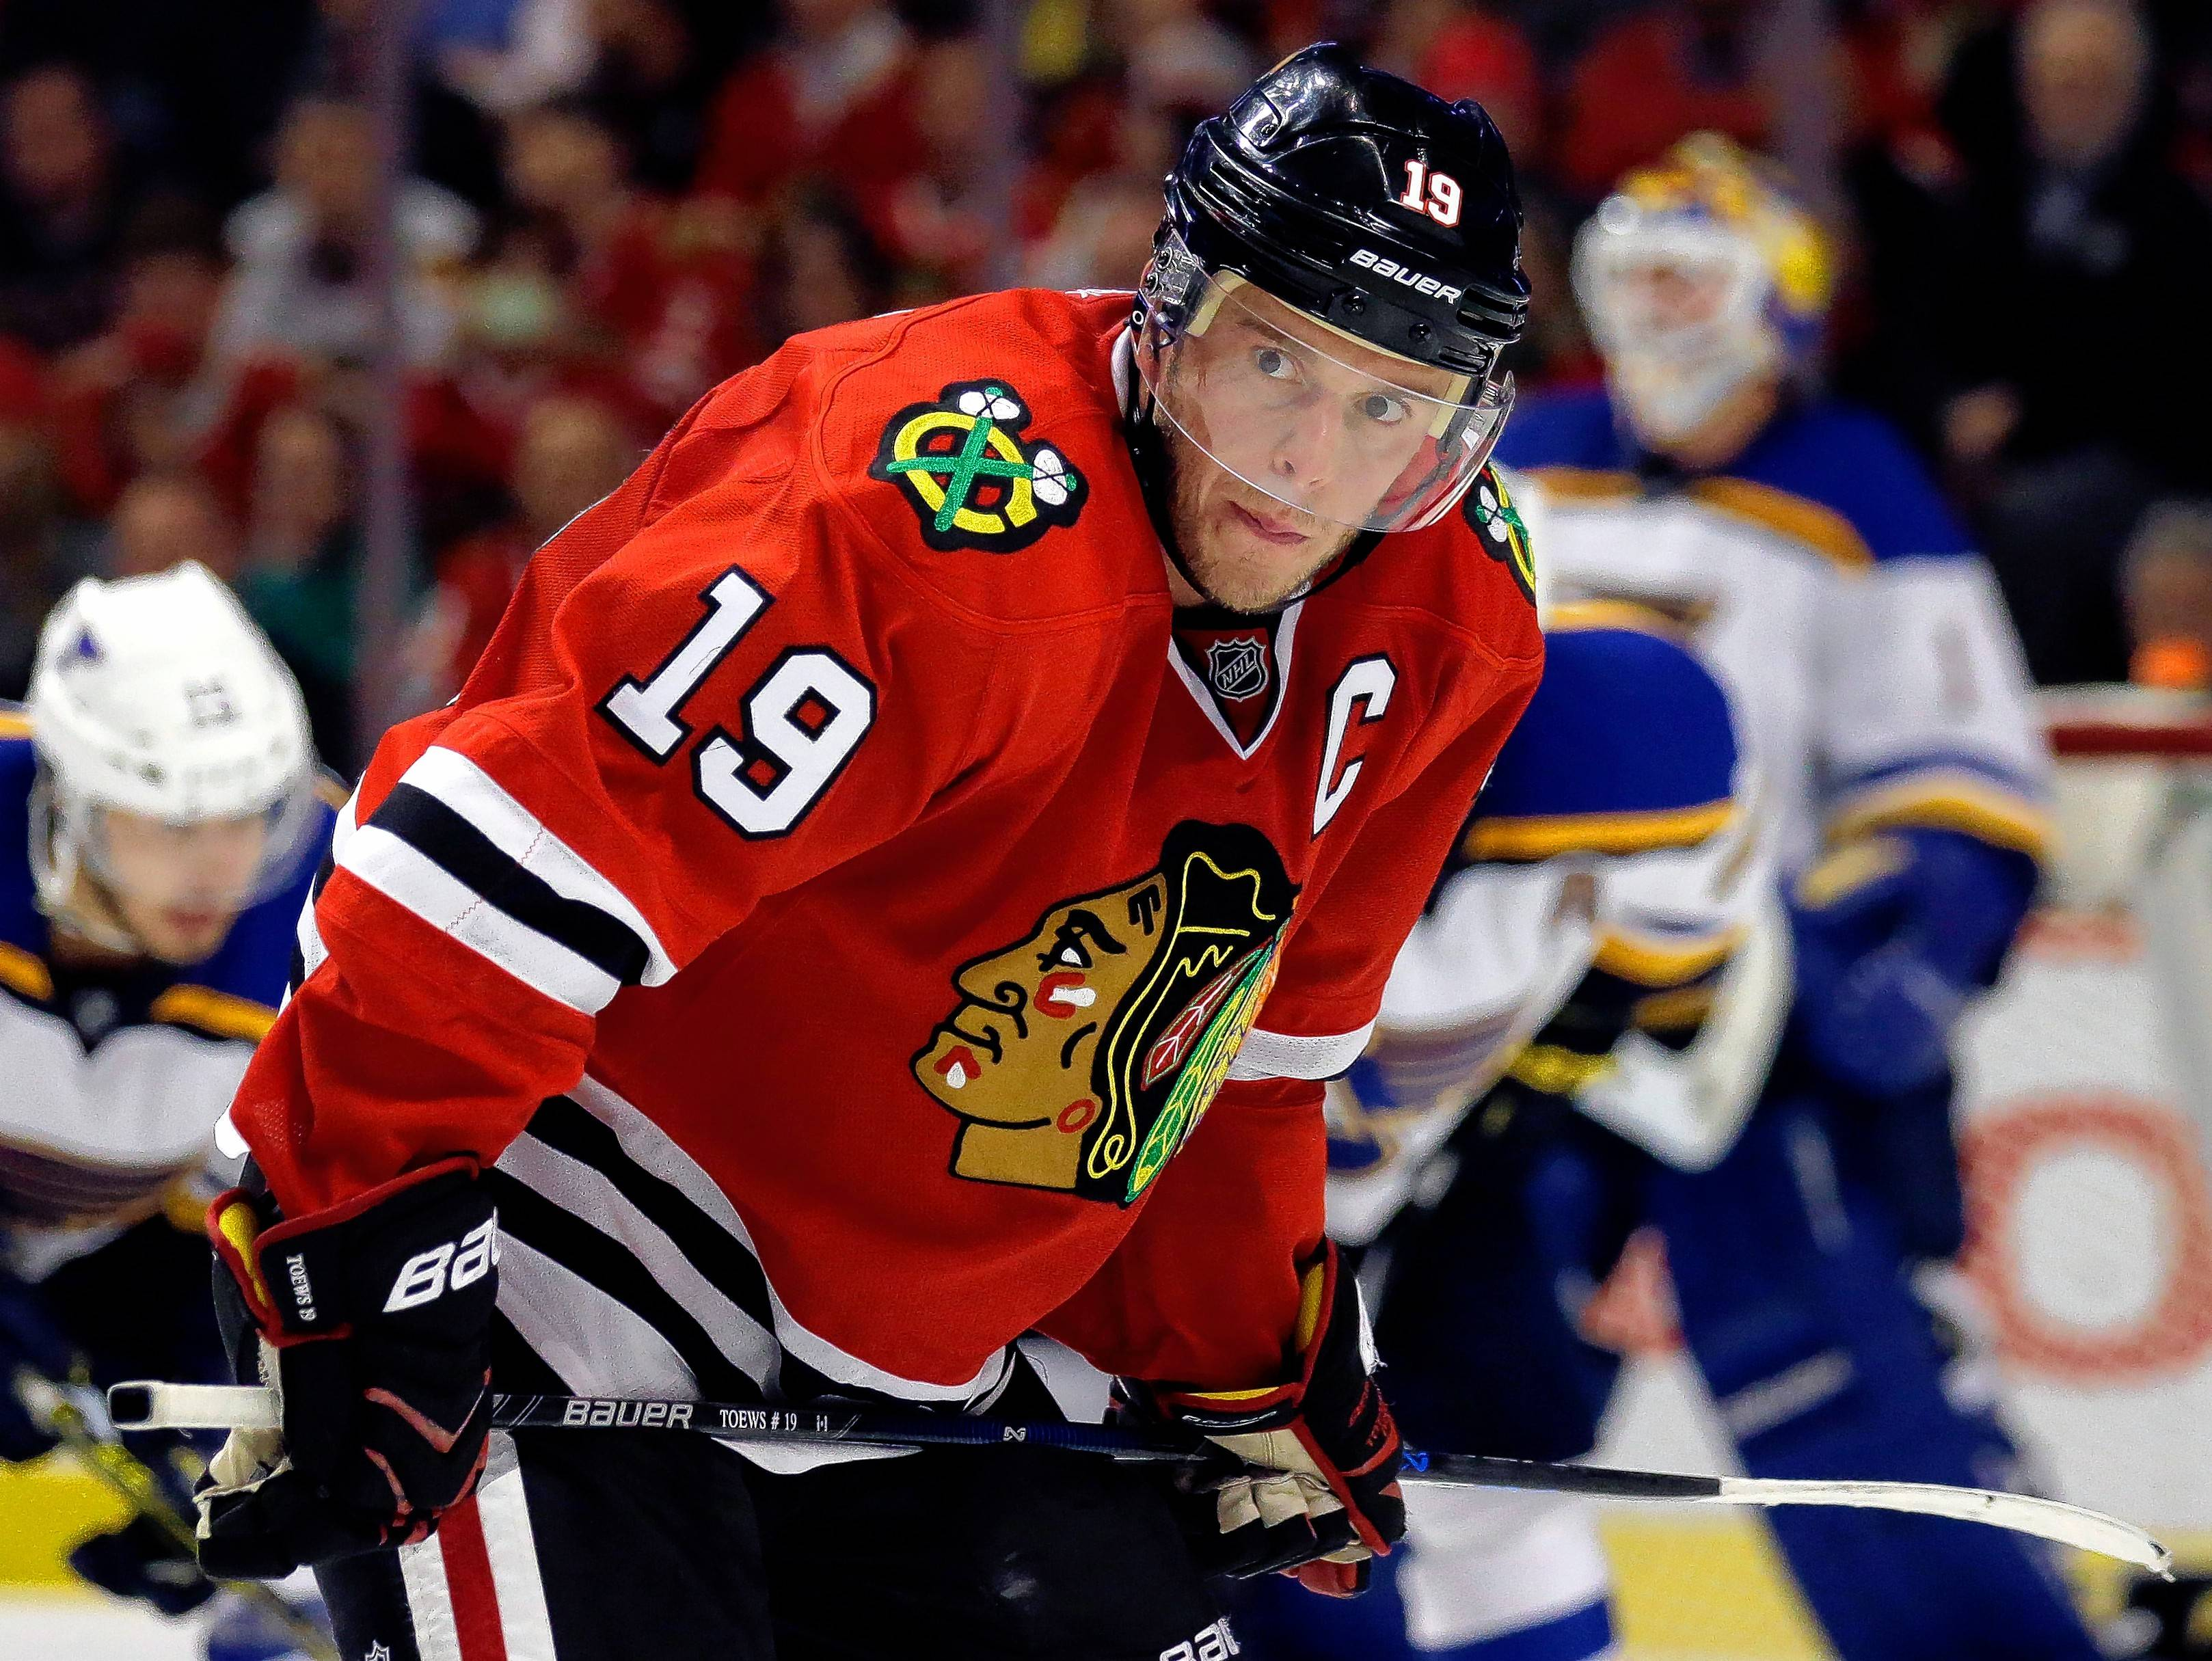 Chicago Blackhawks defenseman Trevor van Riemsdyk has been recalled from the injured reserve list to play in Saturday's game. Jonathan Toews, meanwhile, was put on the IR list retroactive to Nov. 24.